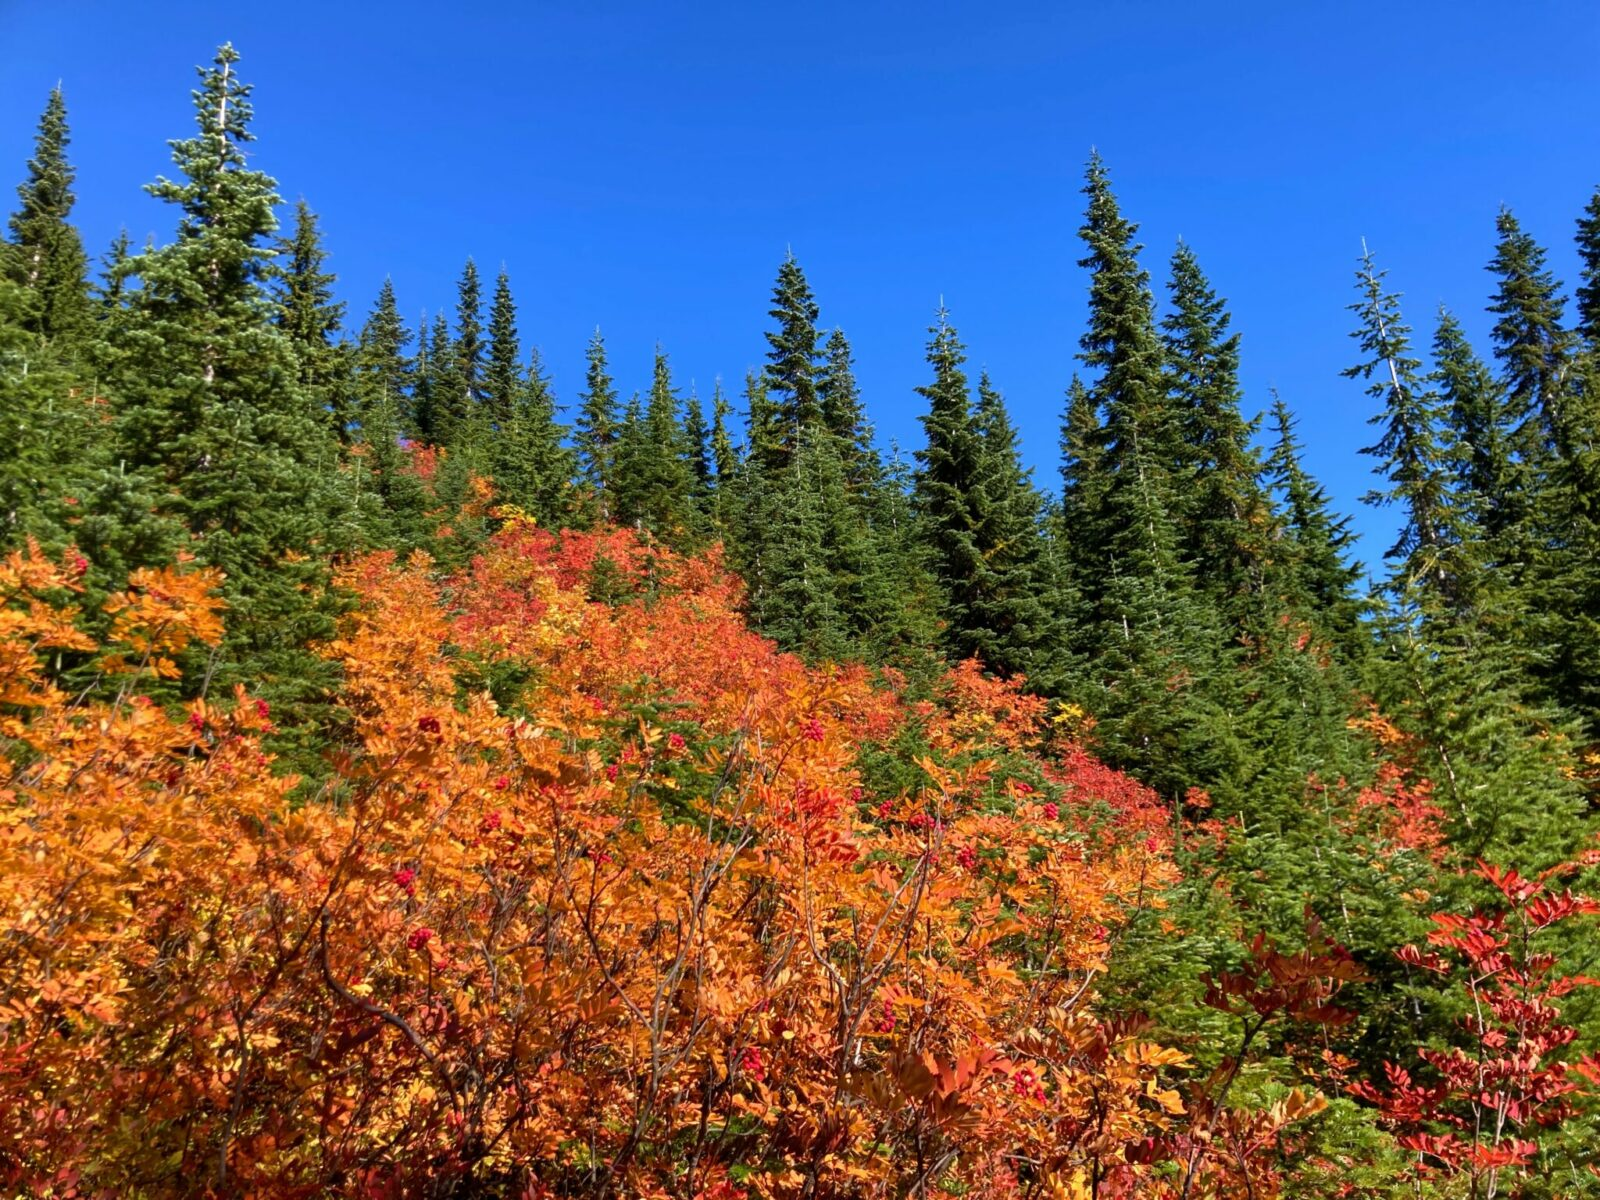 A forested hillside with evergreen trees and bright orange and red bushes in fall color